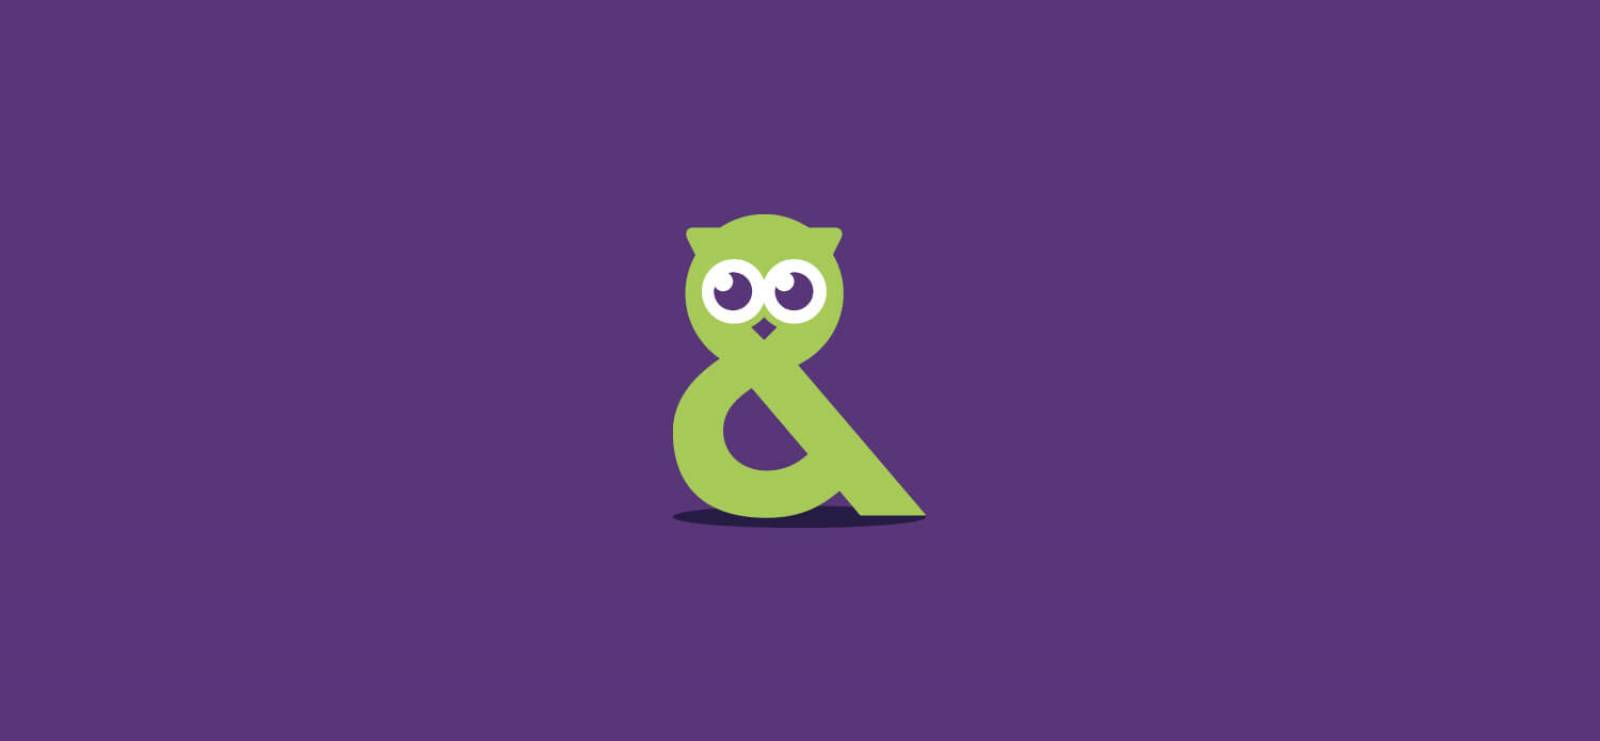 Hoot-logo-2-corporate-identity-agency-graphic-design-canterbury.jpg